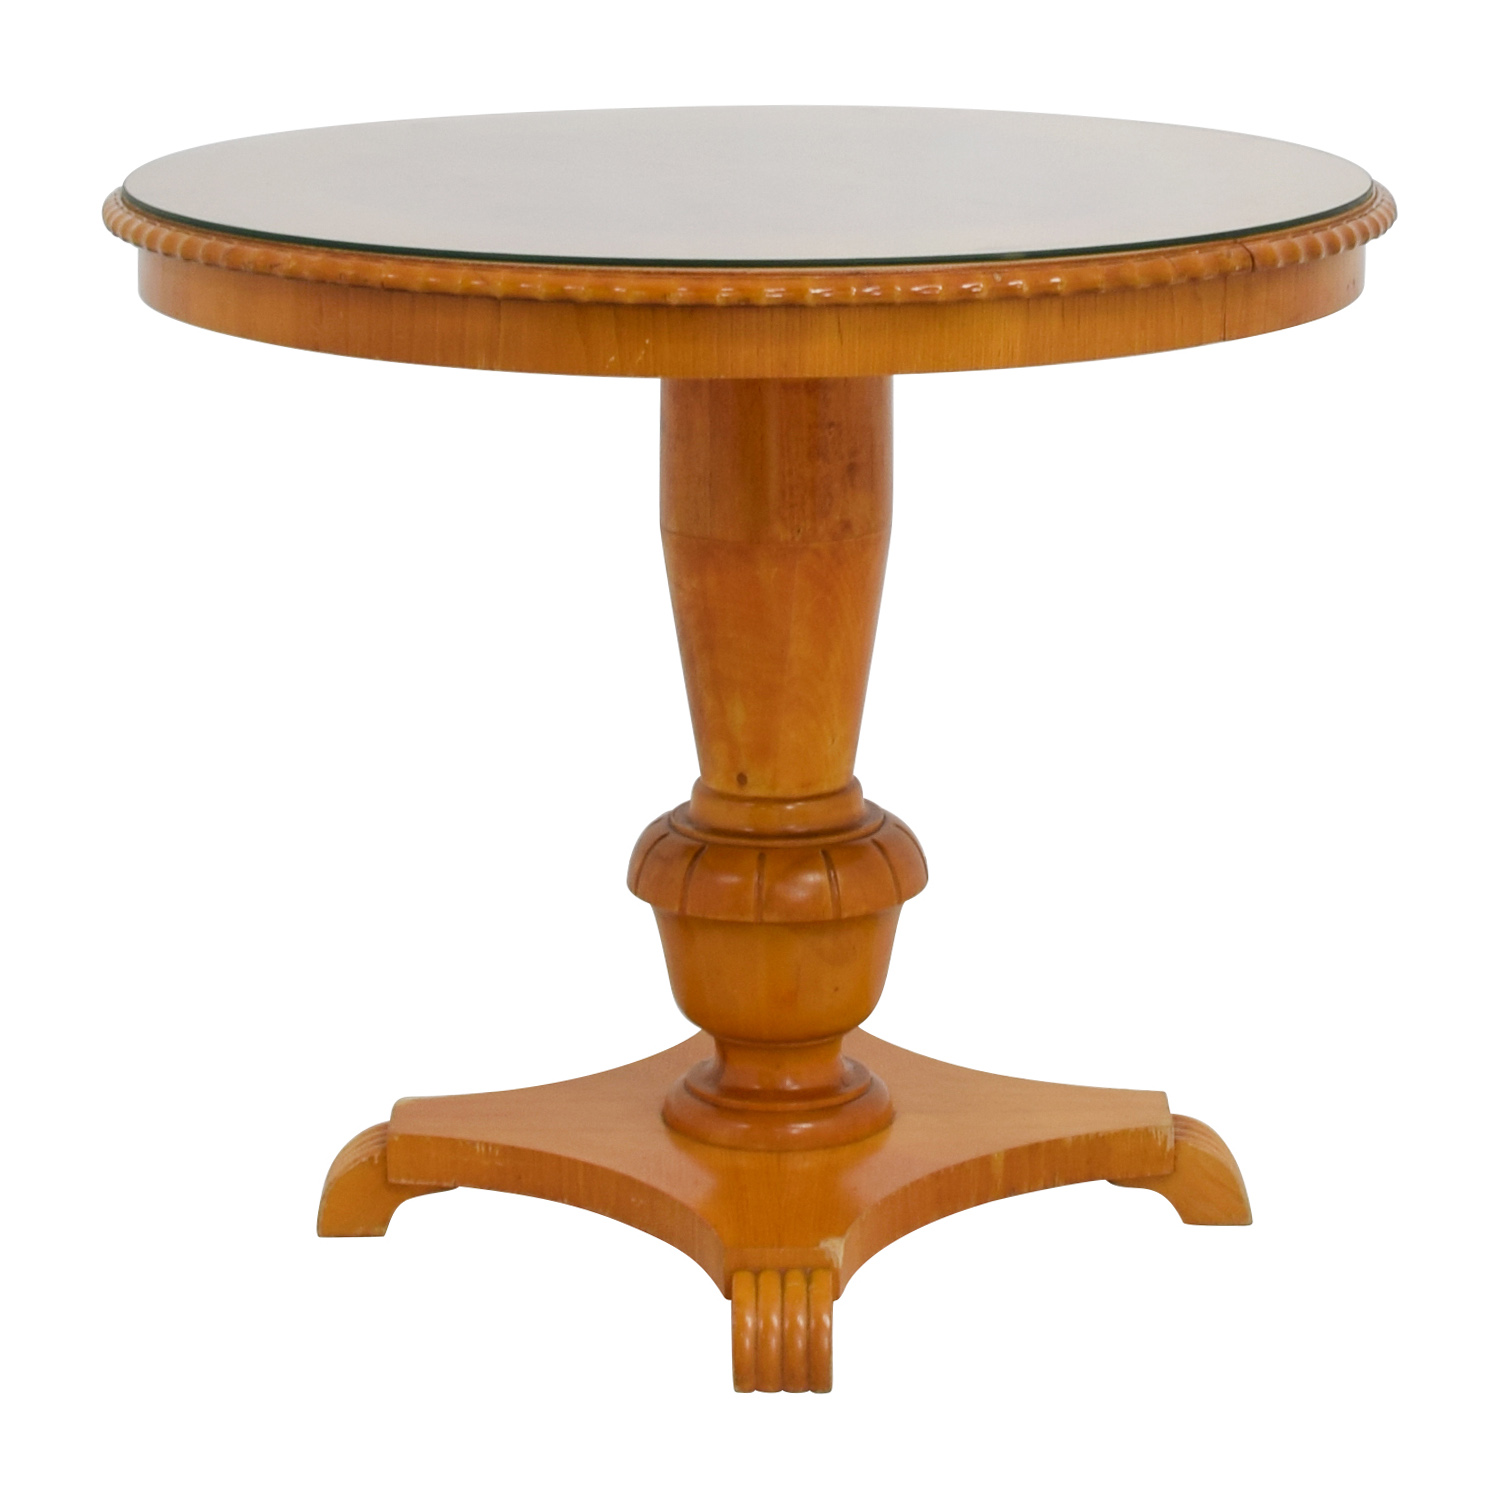 86 OFF Antique Round Wood Dining Table with Glass Top Tables